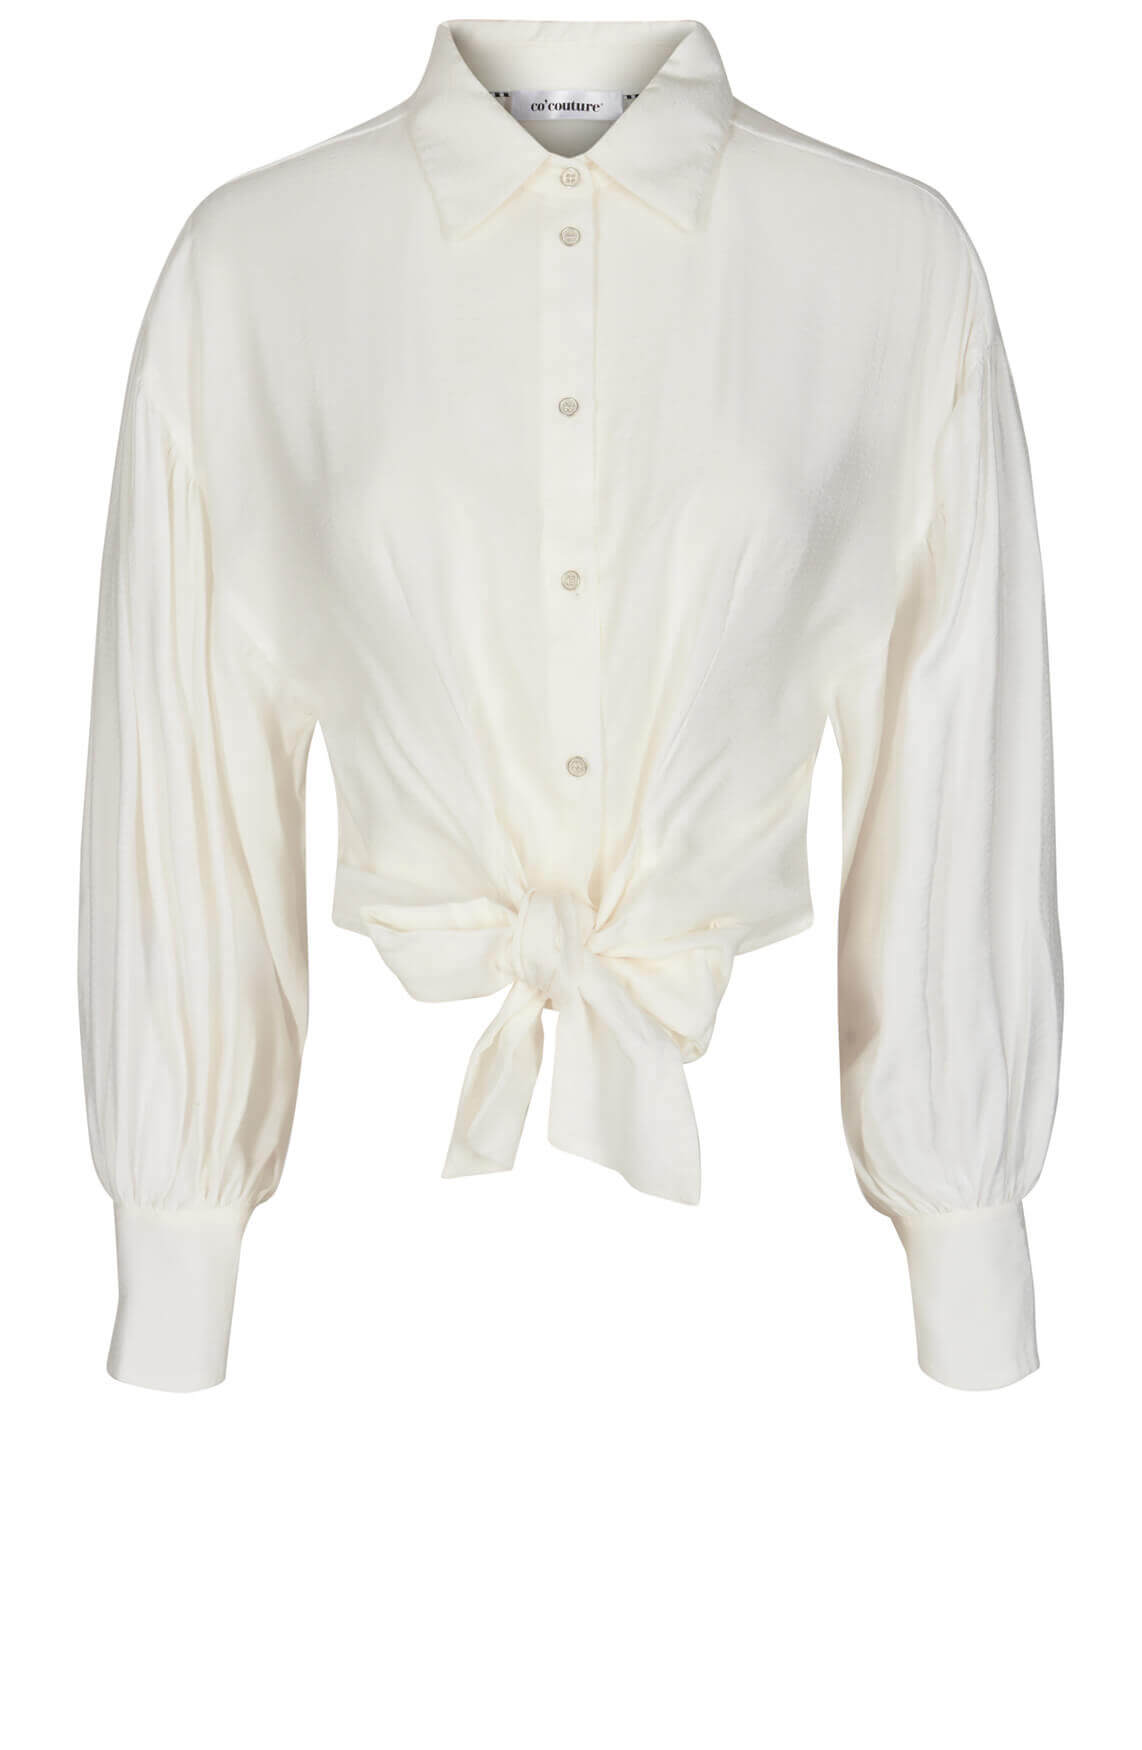 Co Couture Dames Remi blouse wit